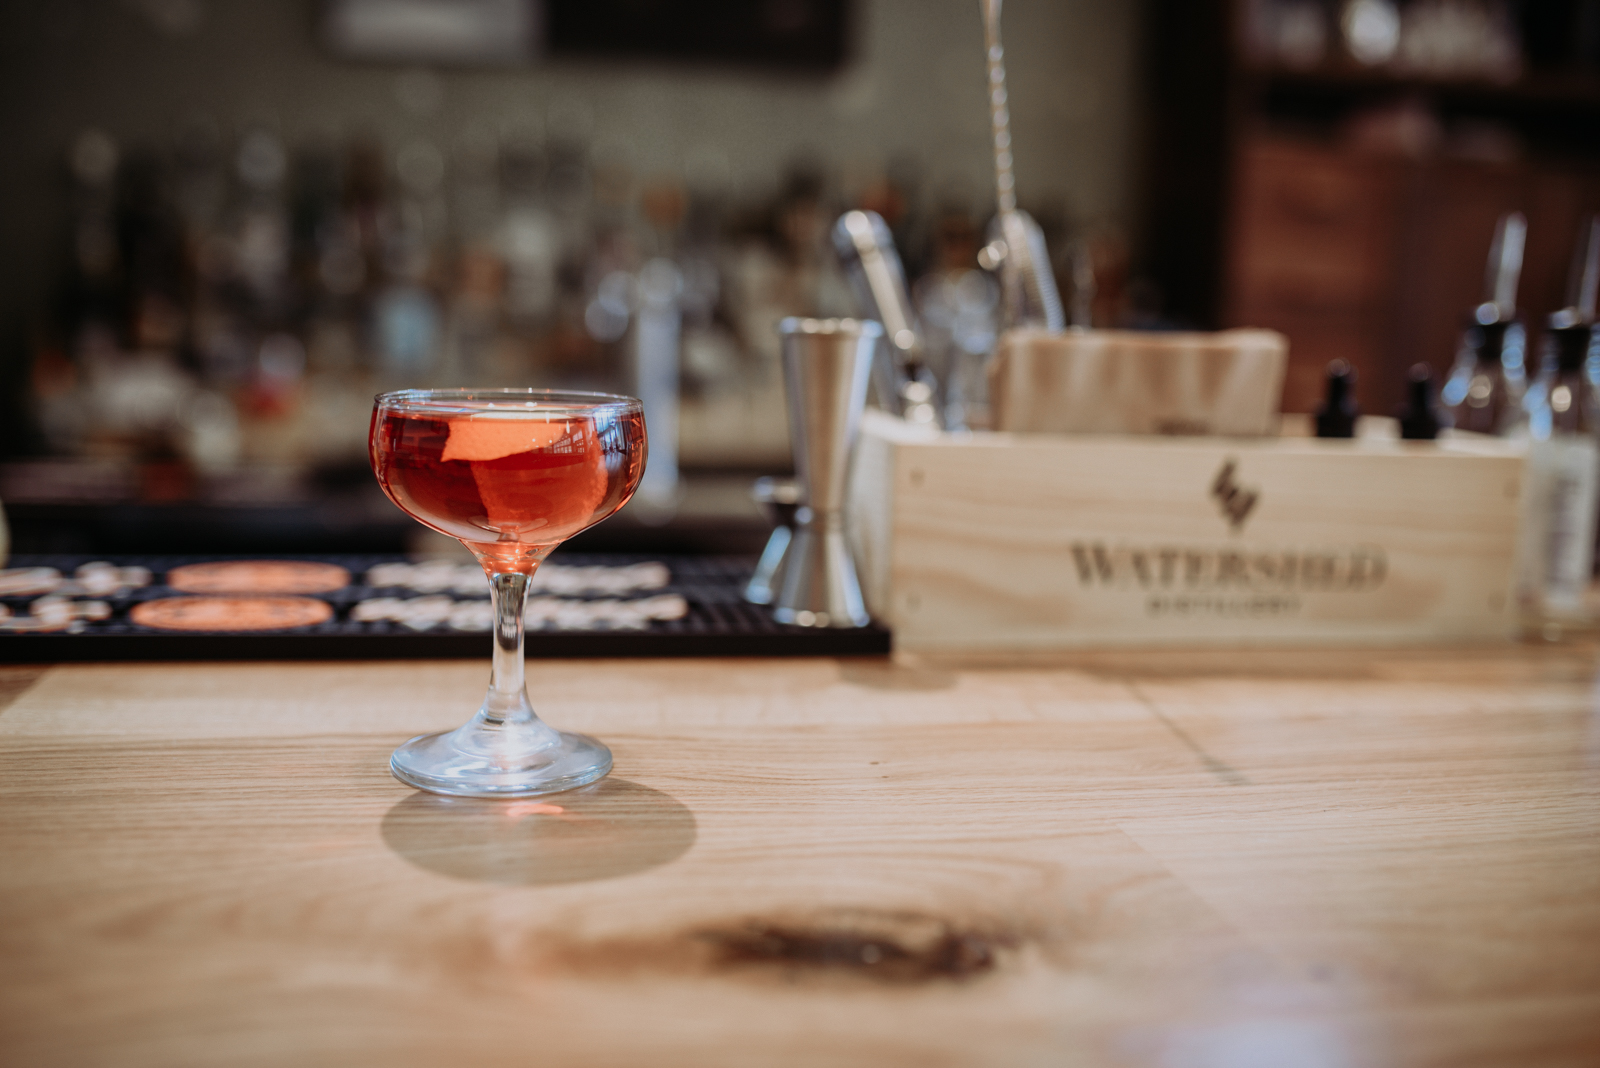 The Negroni: Watershed Distillery Four Peel gin, Campari, and Dolin Rouge vermouth / Image: Brianna Long // Published 11.8.17<p></p>